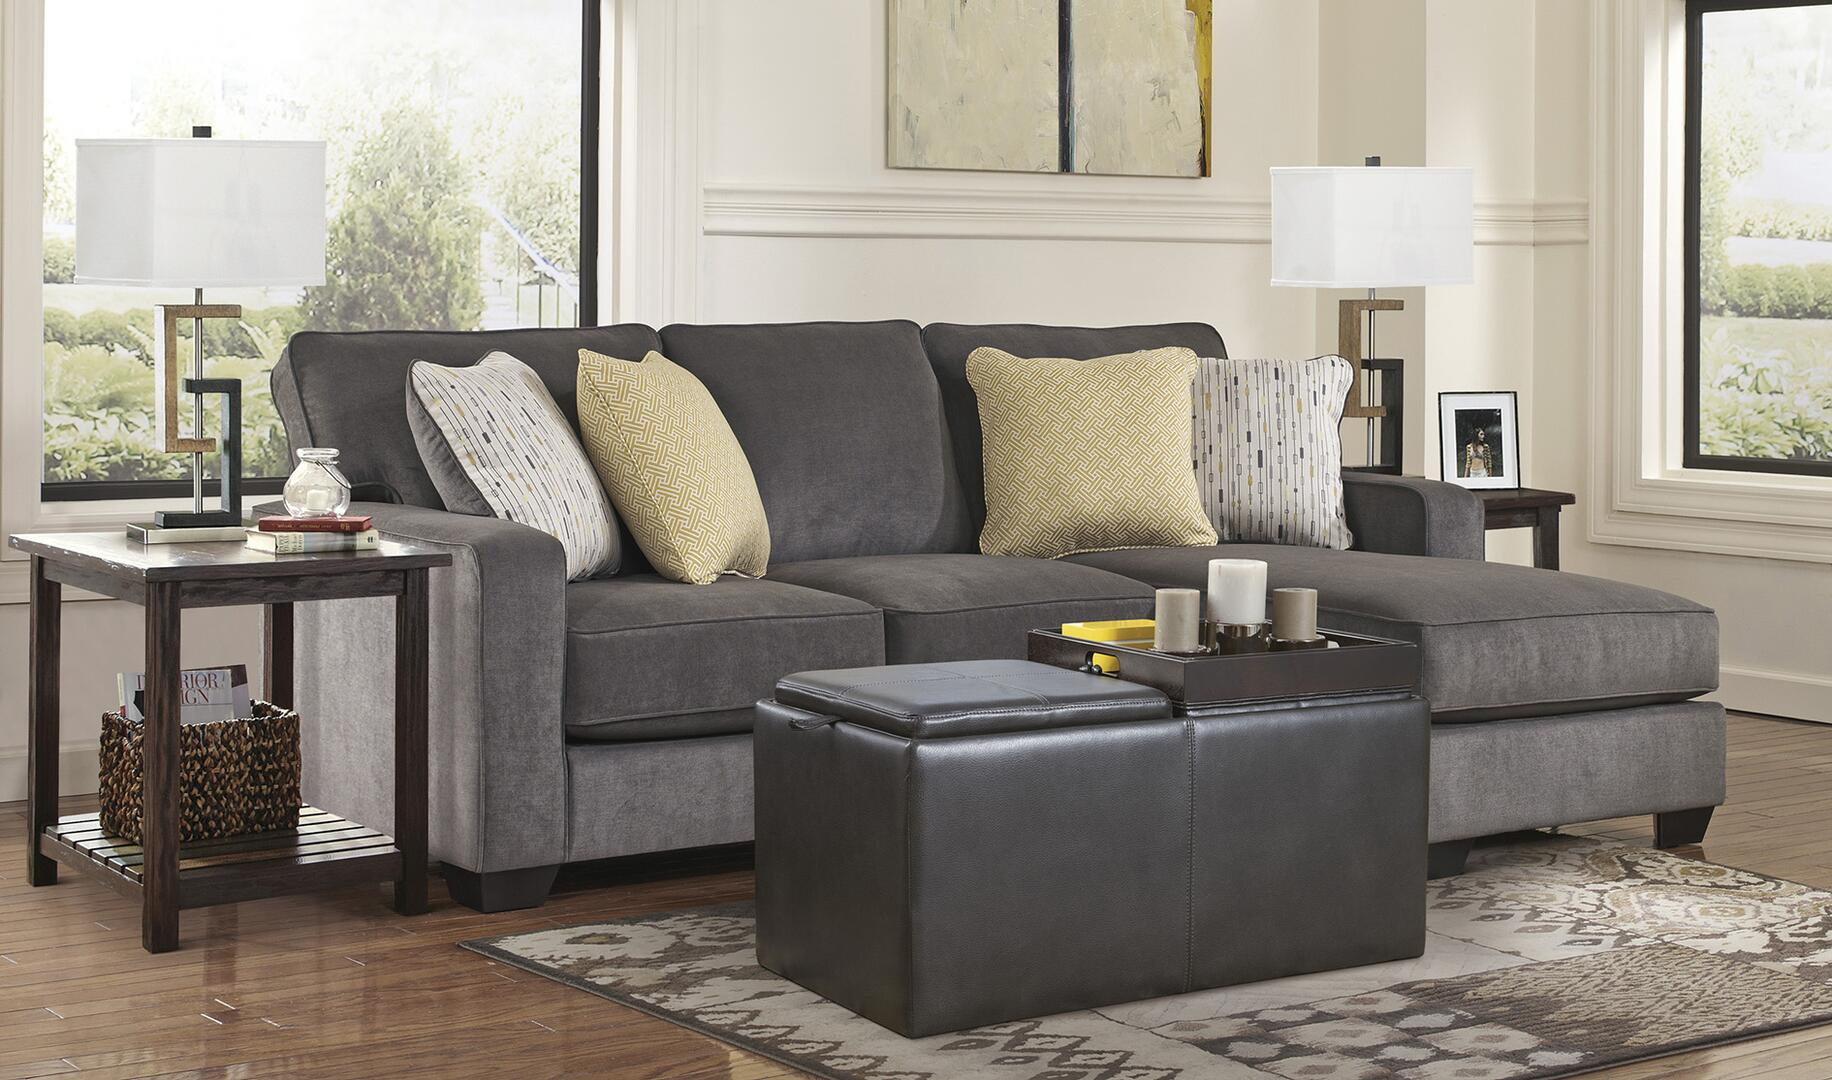 ... Signature Design By Ashley Hodan Sofa Chaise Shown With Ottoman ...